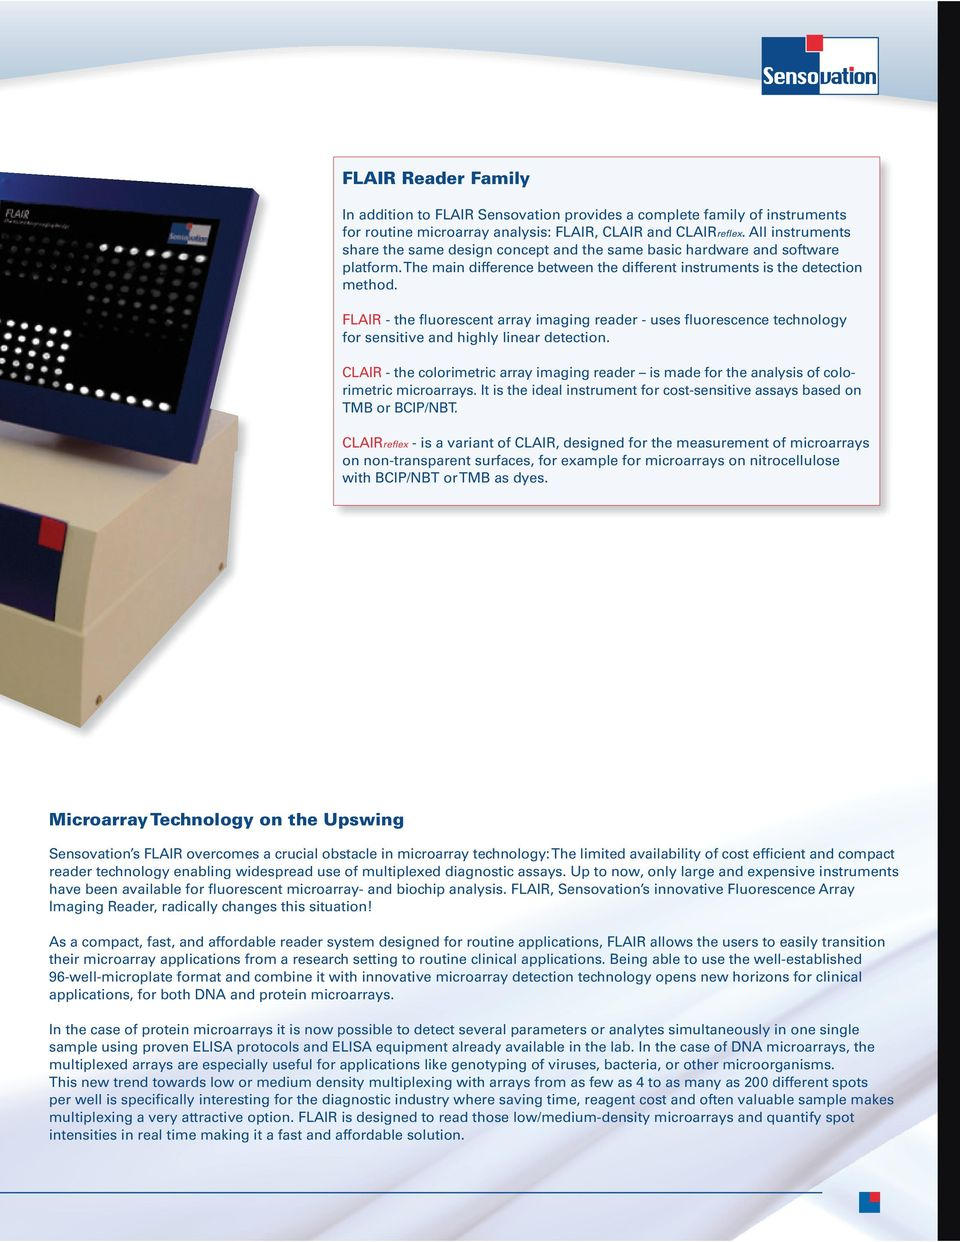 FLAIR - the fluorescent array imaging reader - uses fluorescence technology for sensitive and highly linear detection.